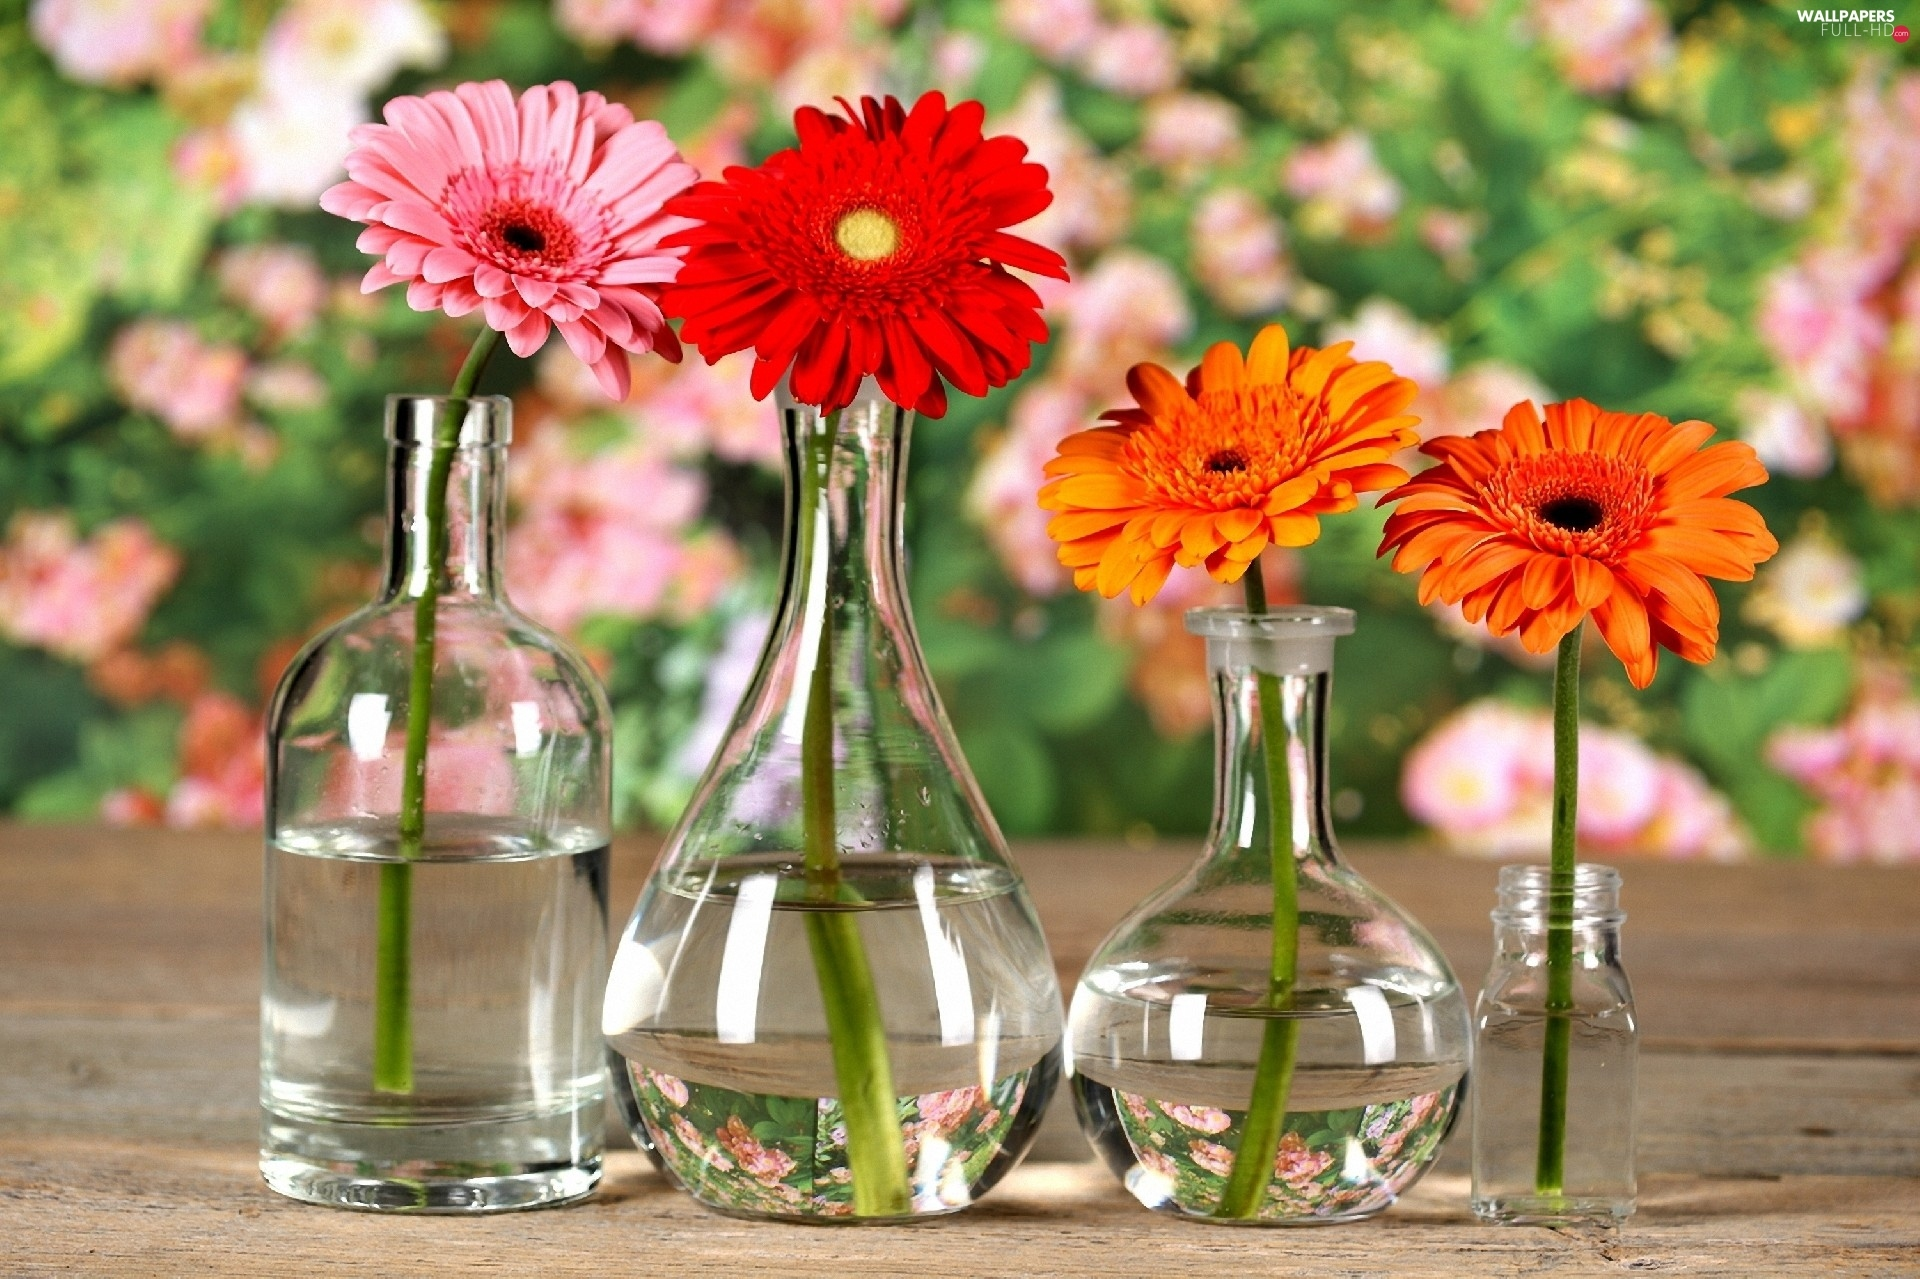 Bottles, gerberas, glass